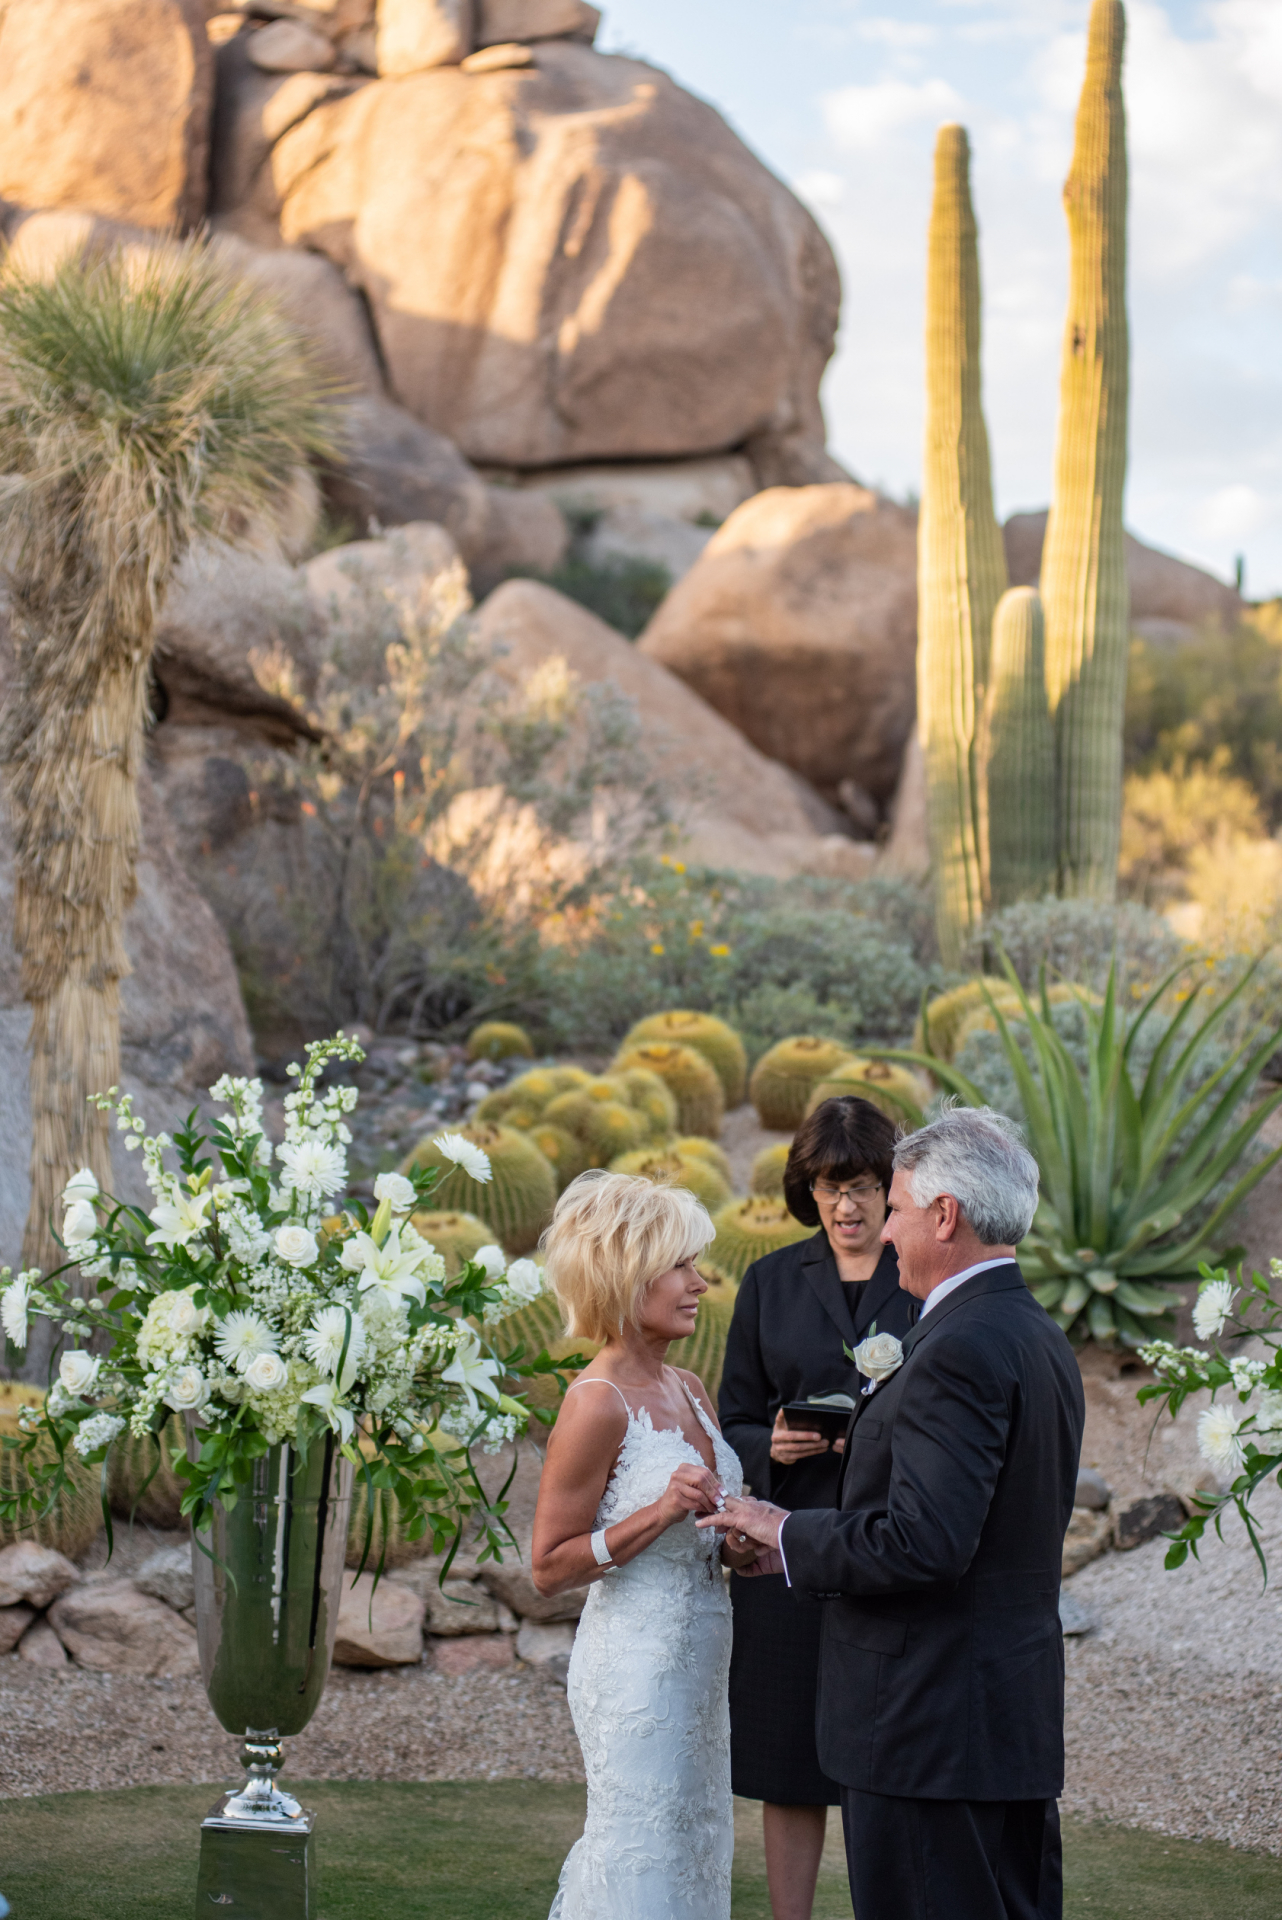 Arizona Wedding Photography - Scottsdale Desert Ceremony | Promise Rock is hovering in the background